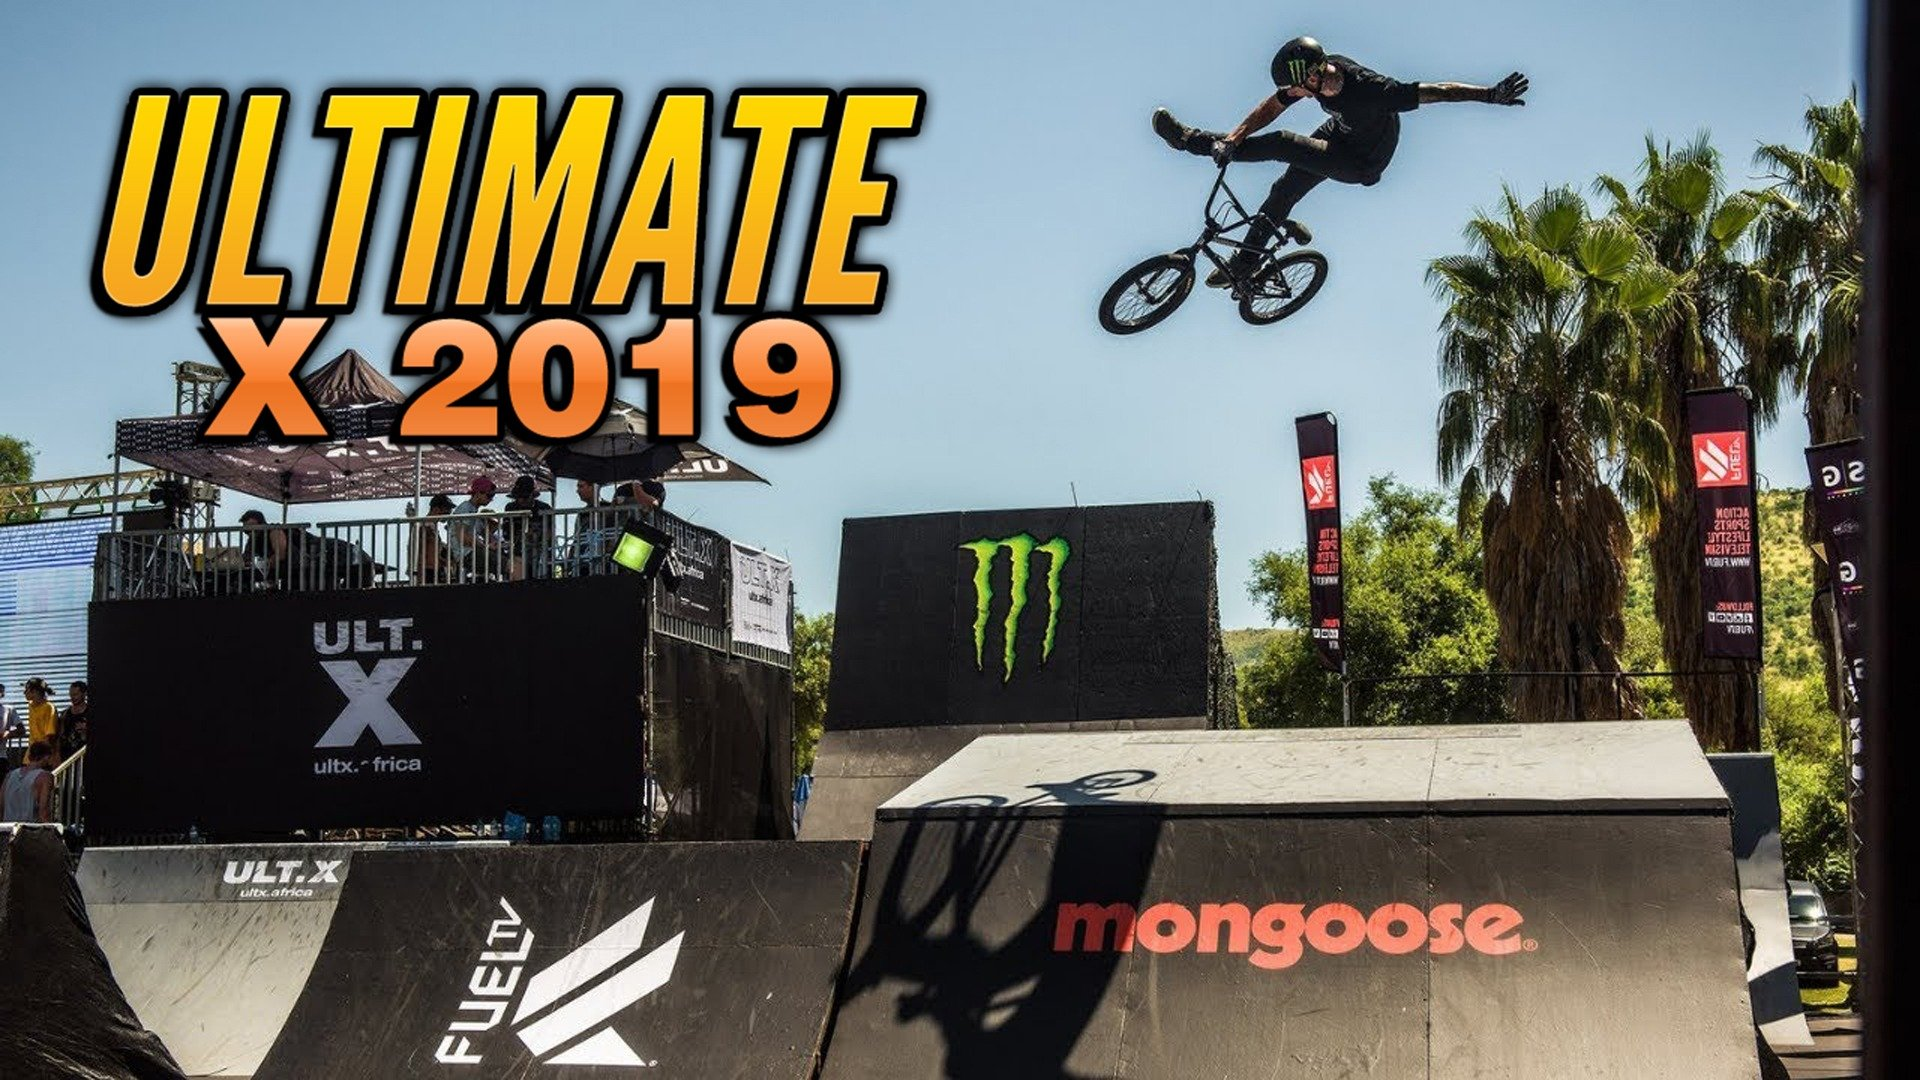 Ultimate X 2019